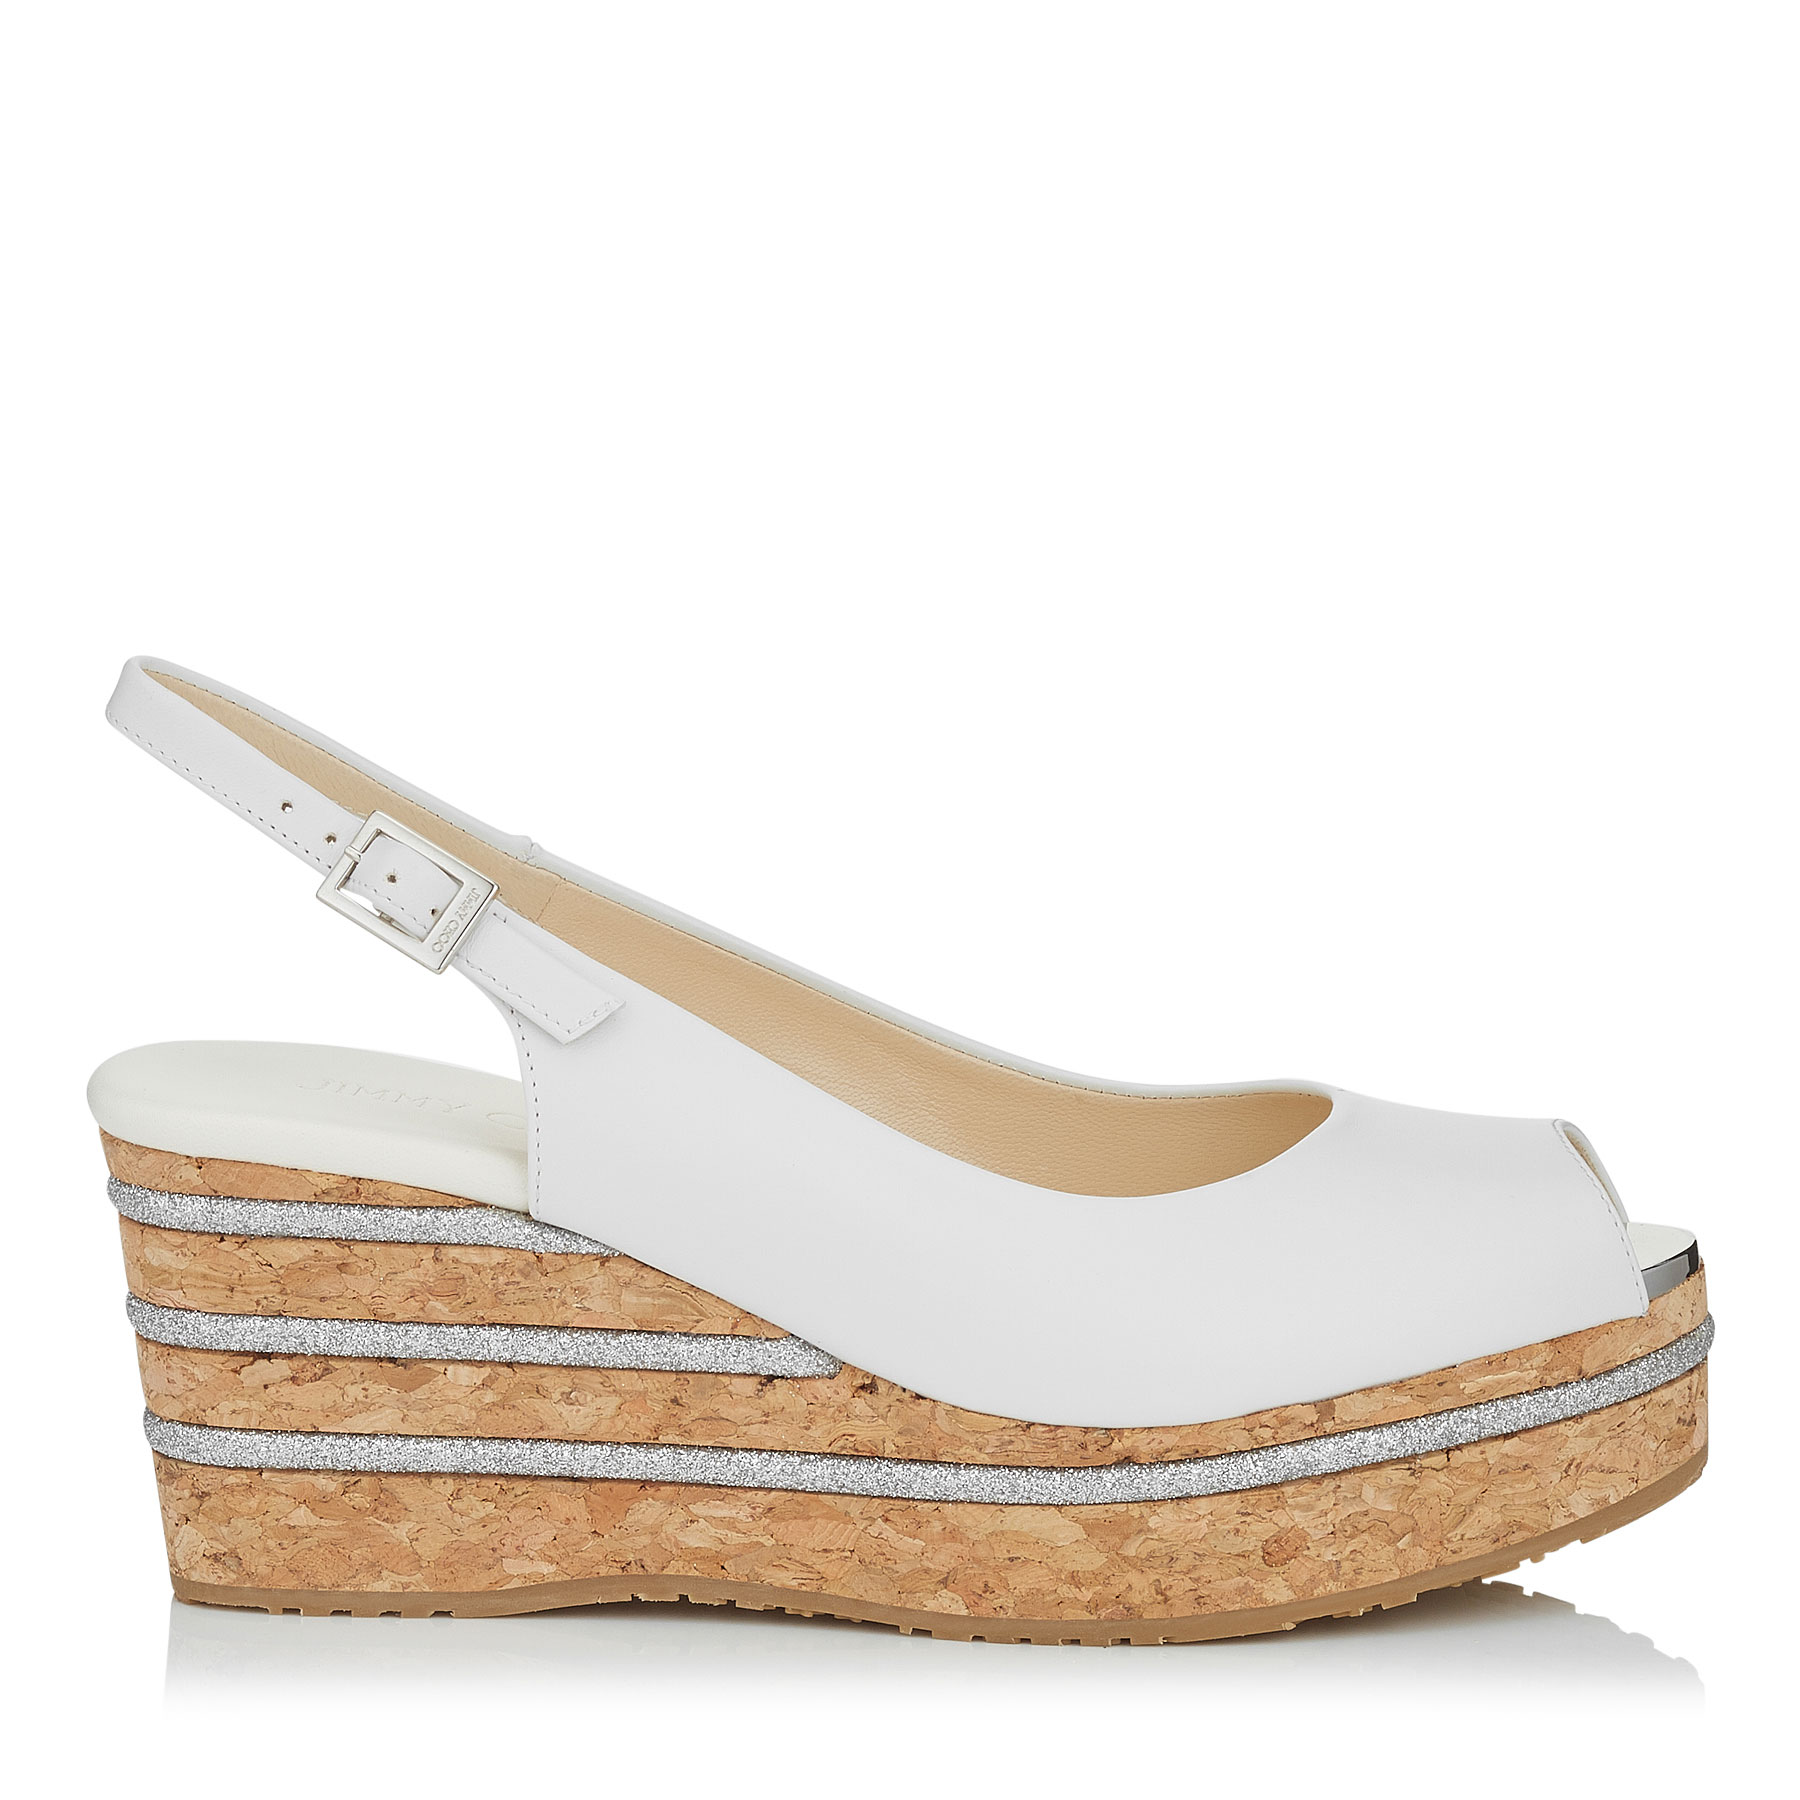 PRAISE Optic White Leather Cork Wedges with Glitter Stripes on Wedge